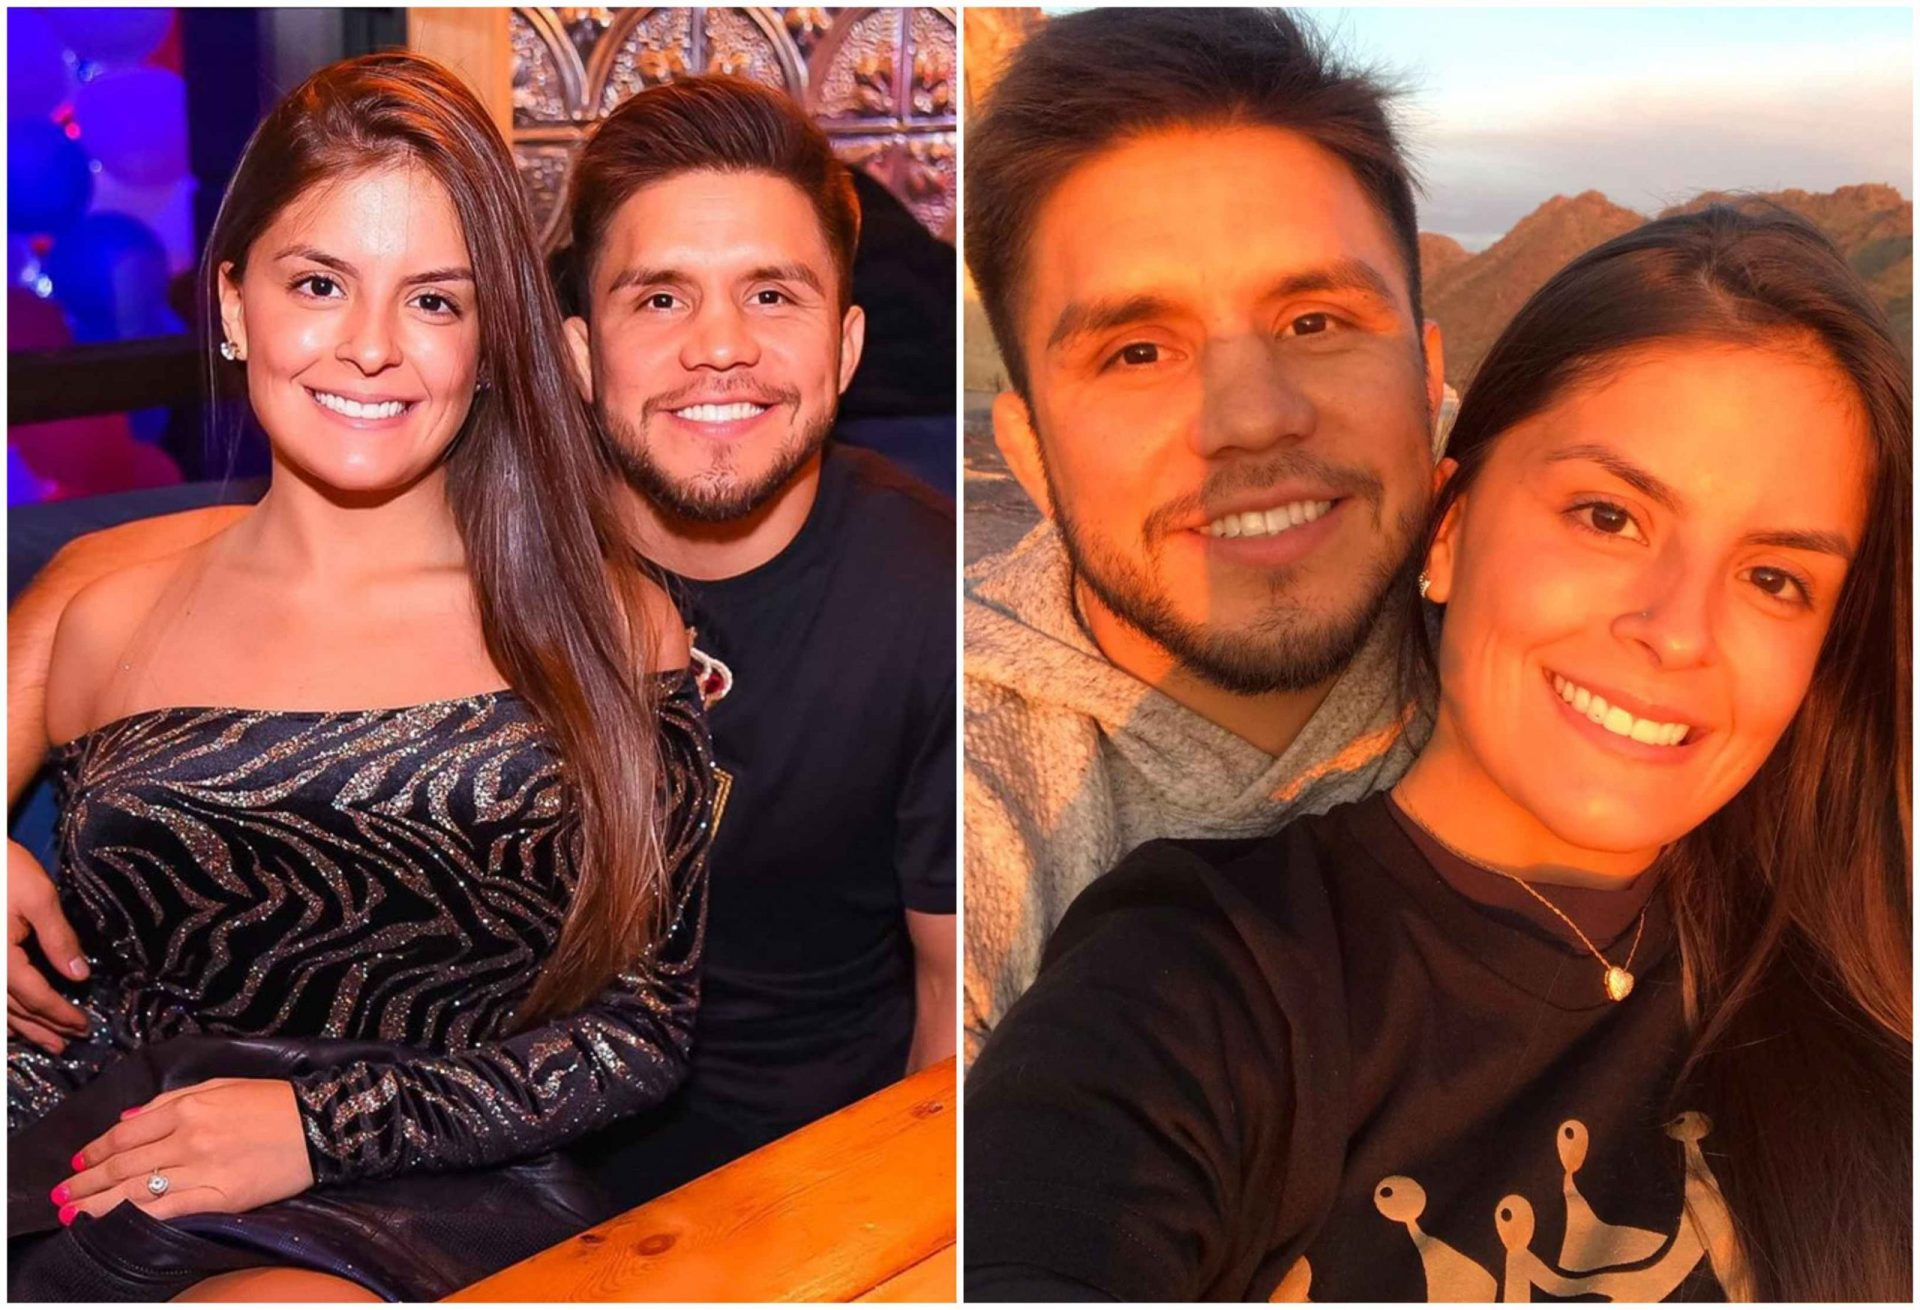 Henry Cejudo bets his money - and his girlfriend - that Alex Volkanovski would not beat him - Cejudo